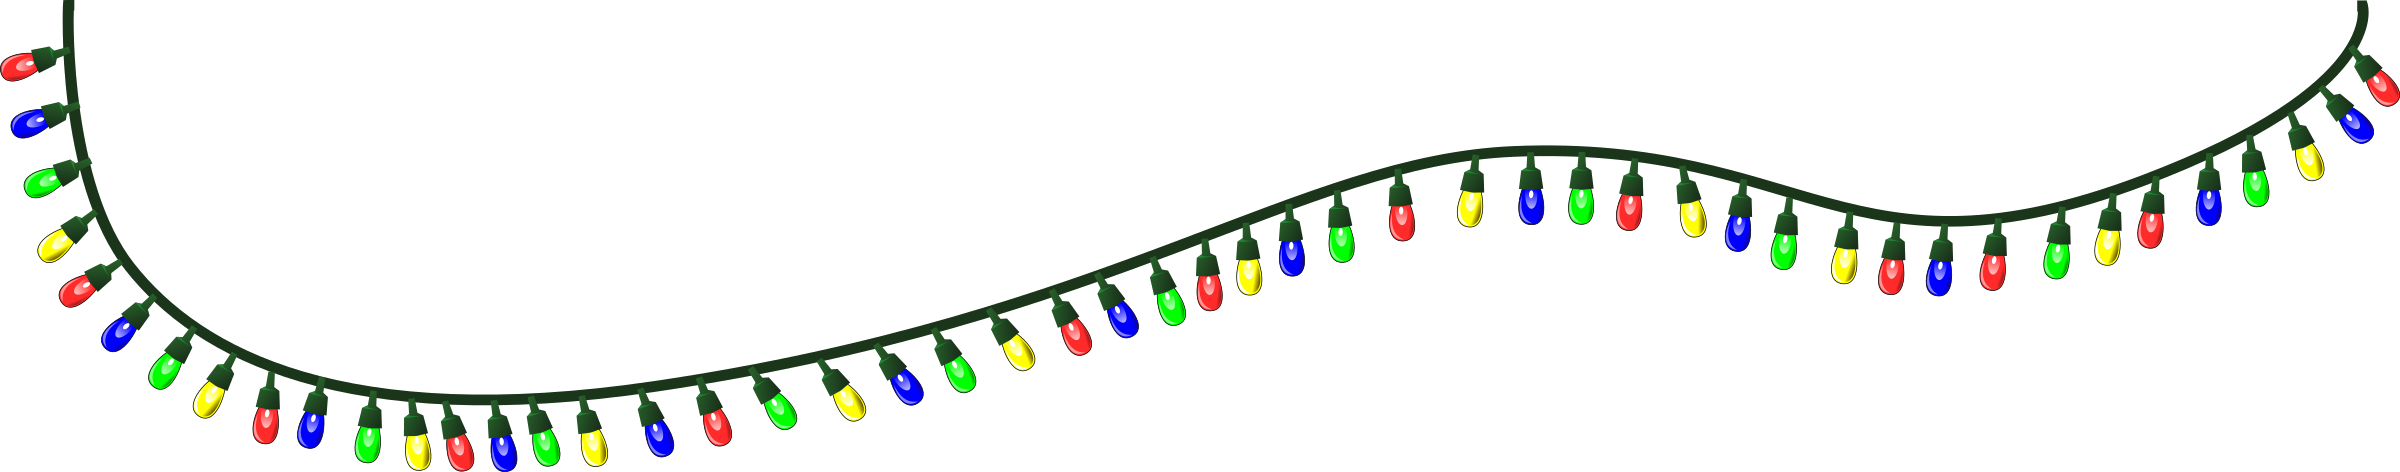 Christmas Lights Free Dividers Clipart Bars And Lines Png.